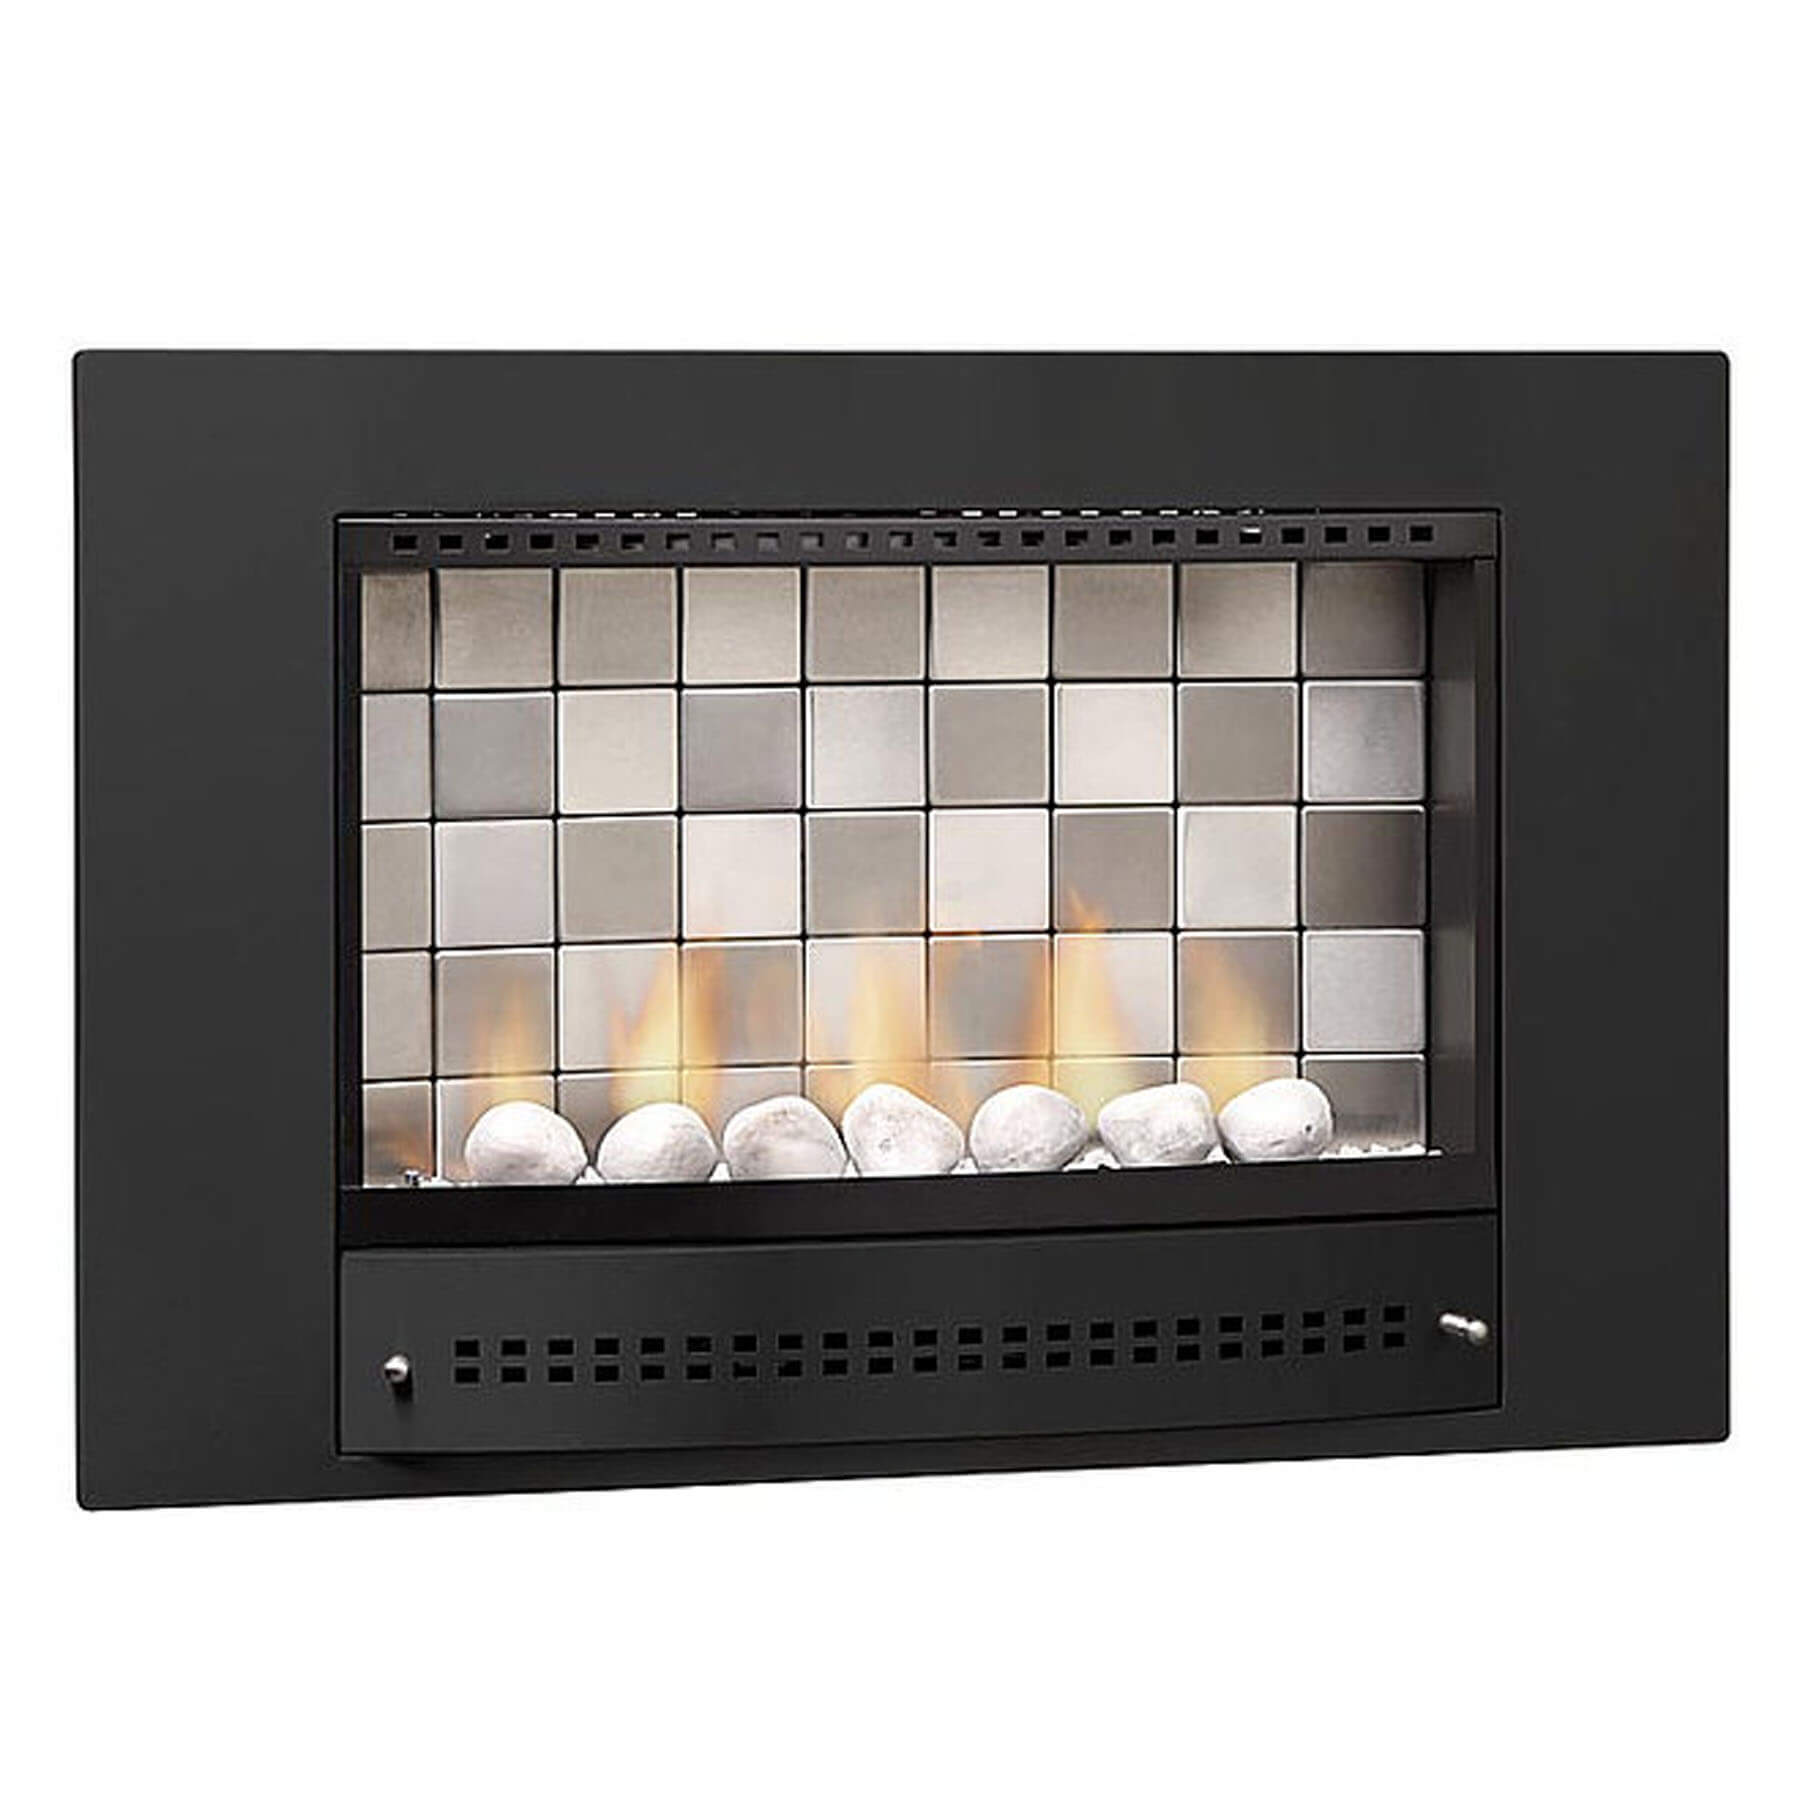 Gas-Fireplaces-Picture-Black-Facia-Tiled-Back